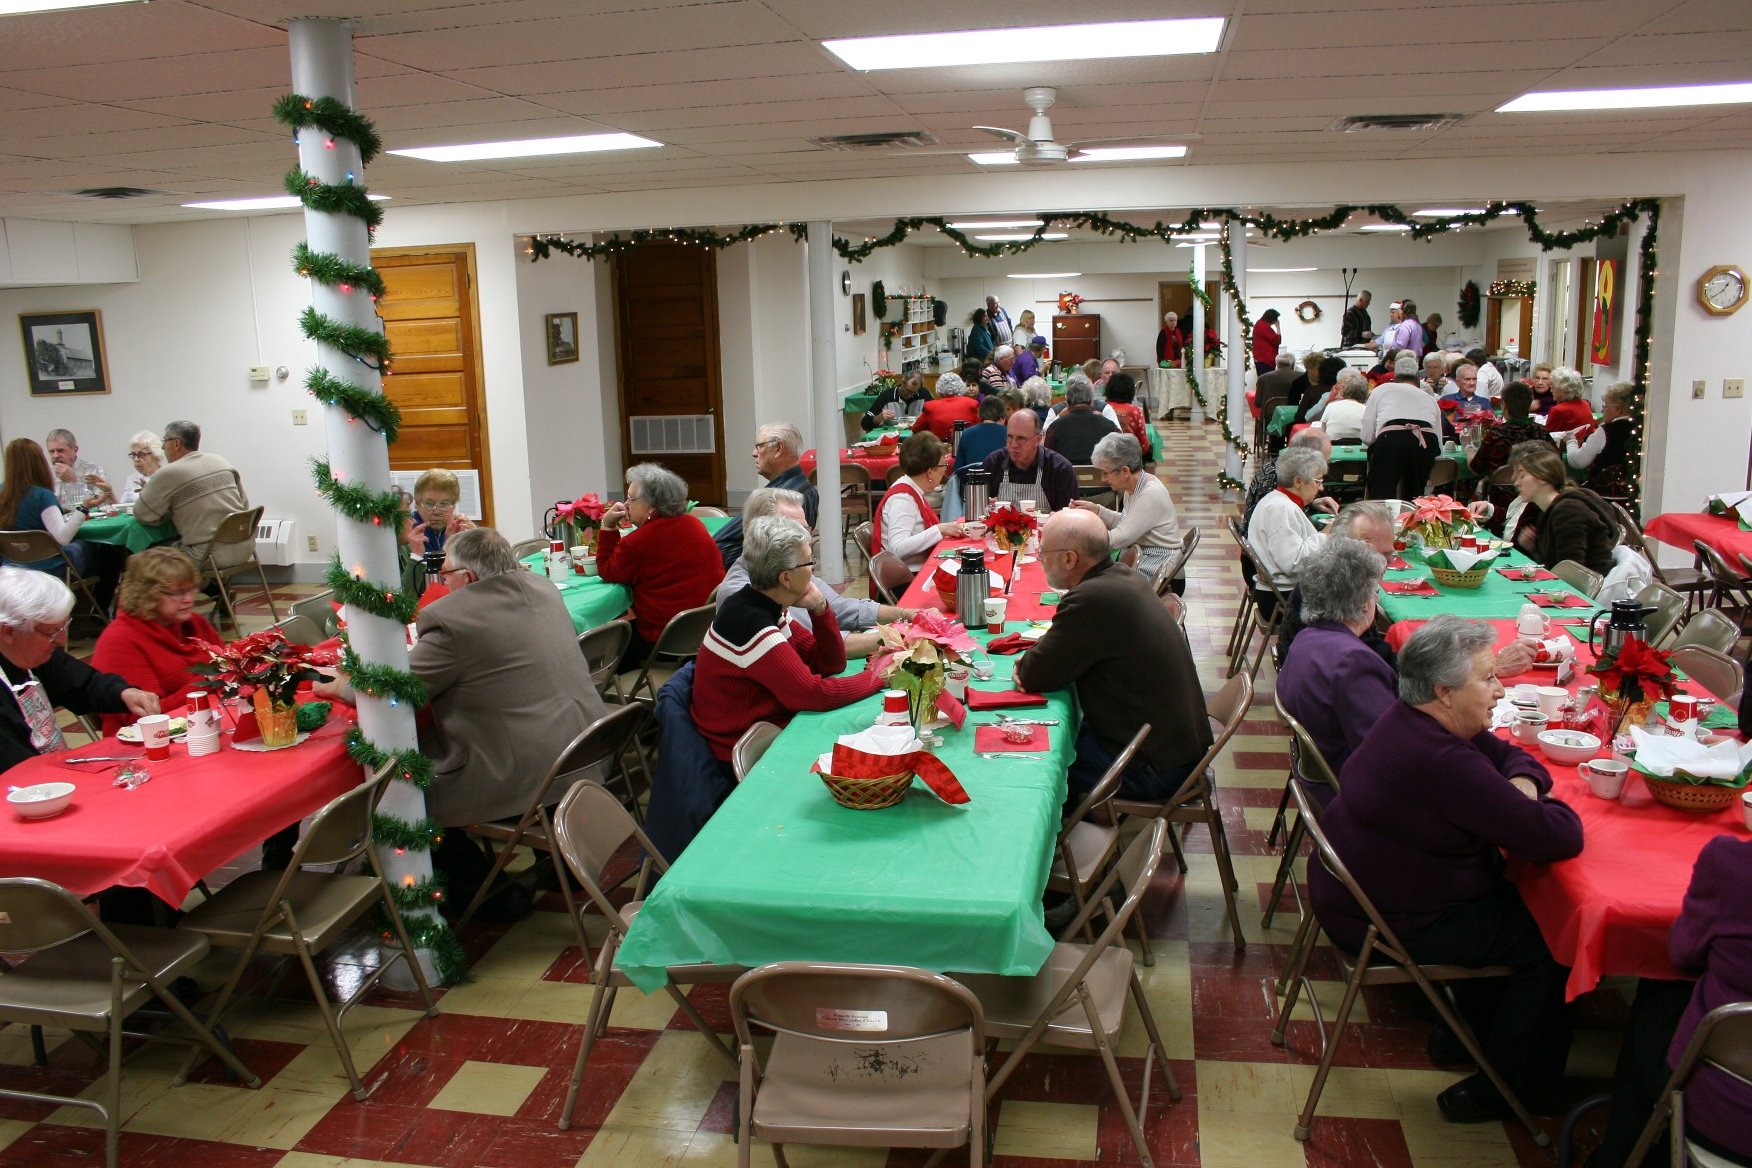 Volunteers expected to serve around 225 diners at the free Community Christmas Dinner. A free will offering could be given.